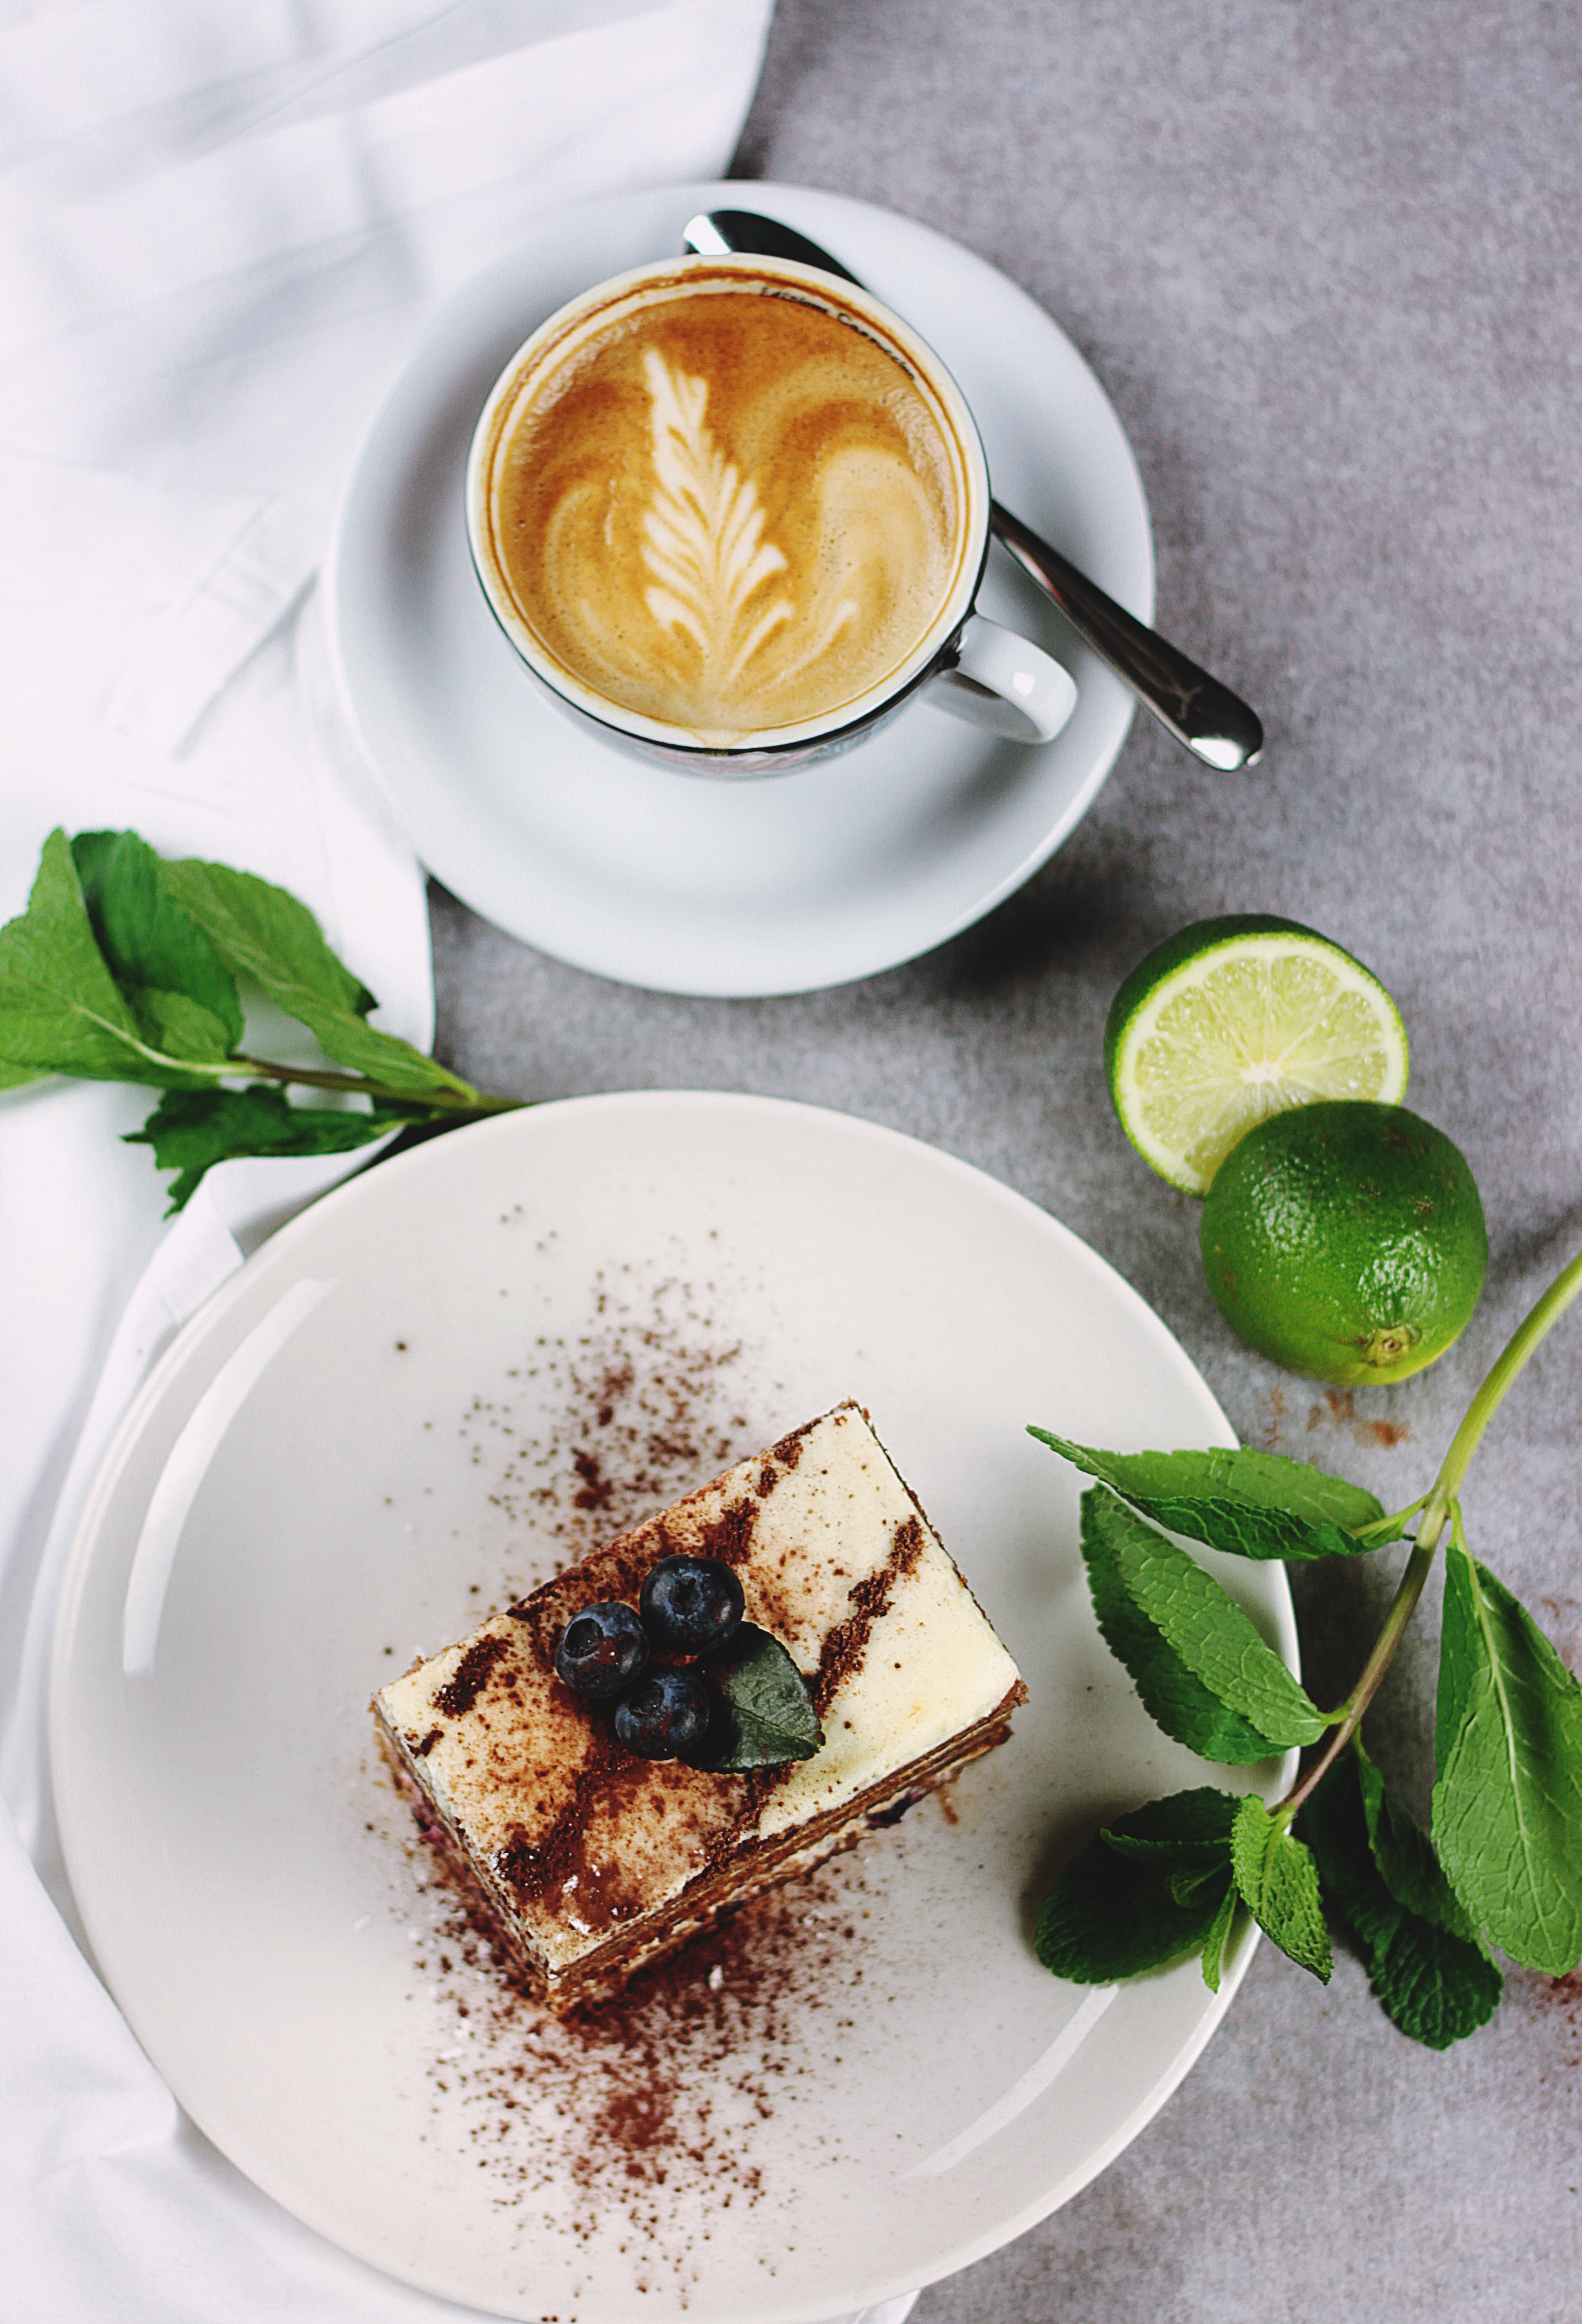 Coffee in white cup with foam artwork near plate with cake with dusting, mint and lime